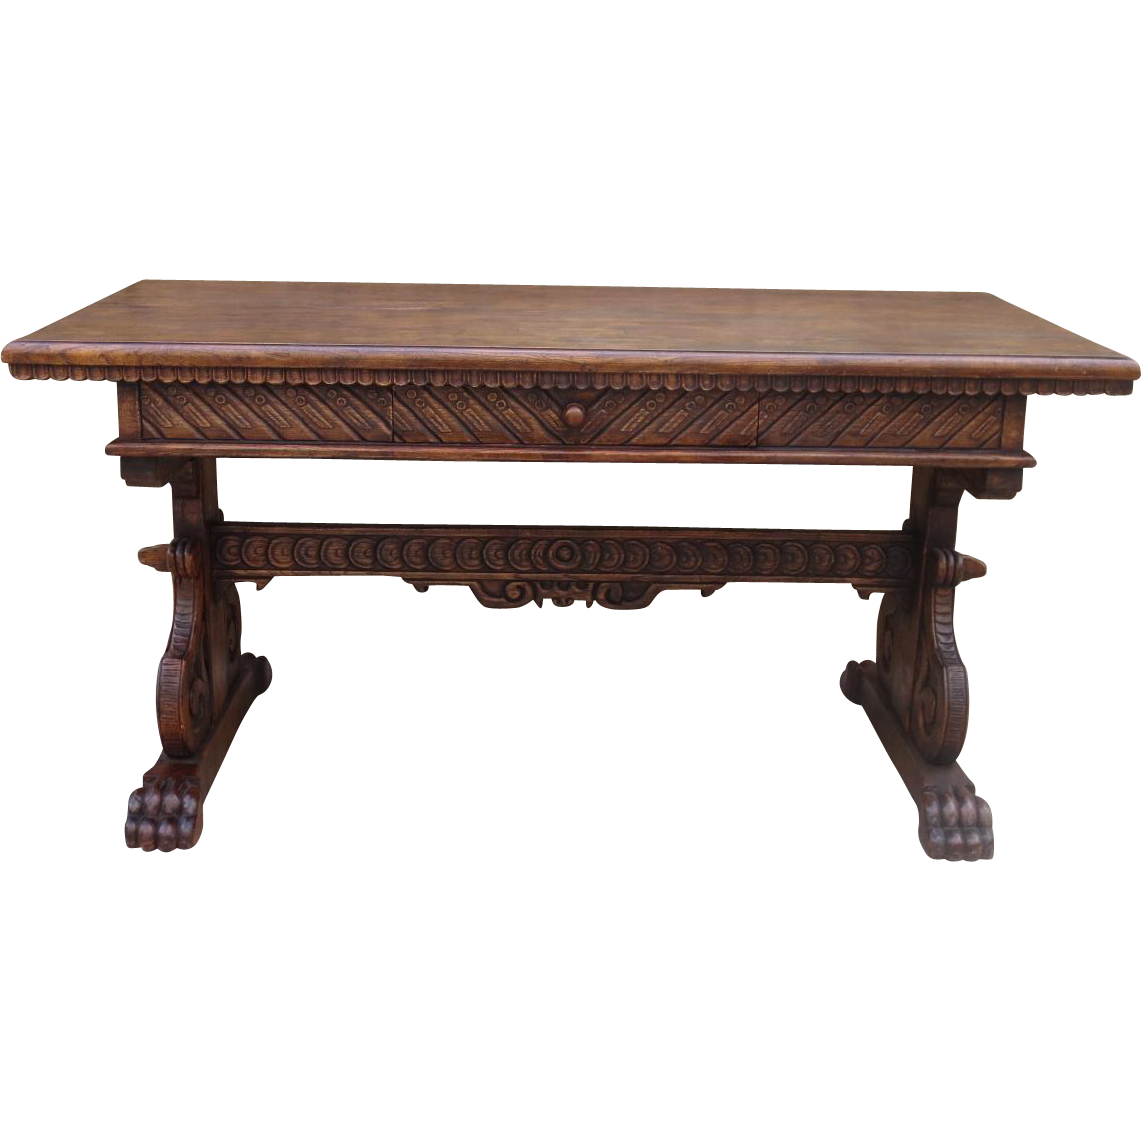 Spanish Antique Hand Carved Desk Antique Table Antique Furniture - Spanish Antique Hand Carved Desk Antique Table Antique Furniture